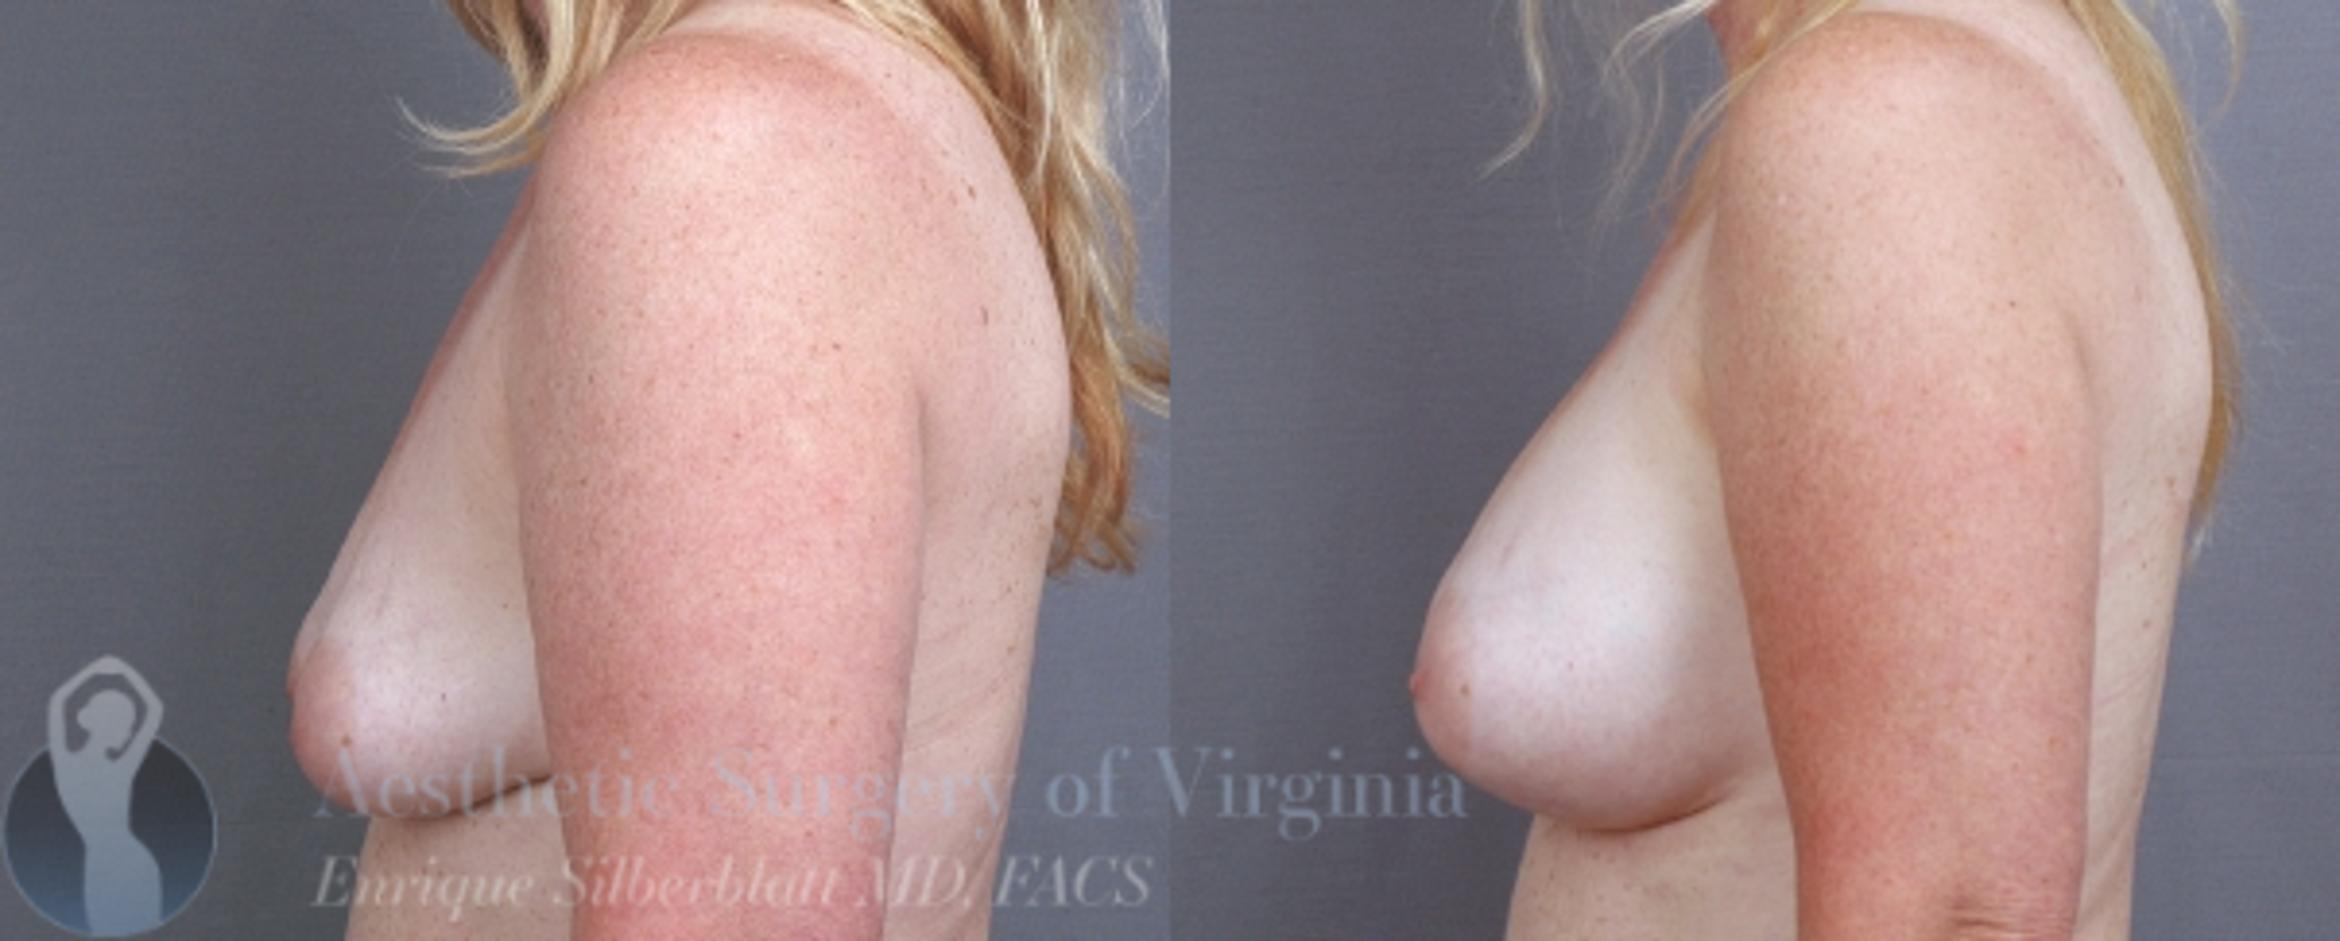 Breast Augmentation Case 9 Before & After View #3 | Roanoke, VA | Aesthetic Surgery of Virginia: Enrique Silberblatt, MD